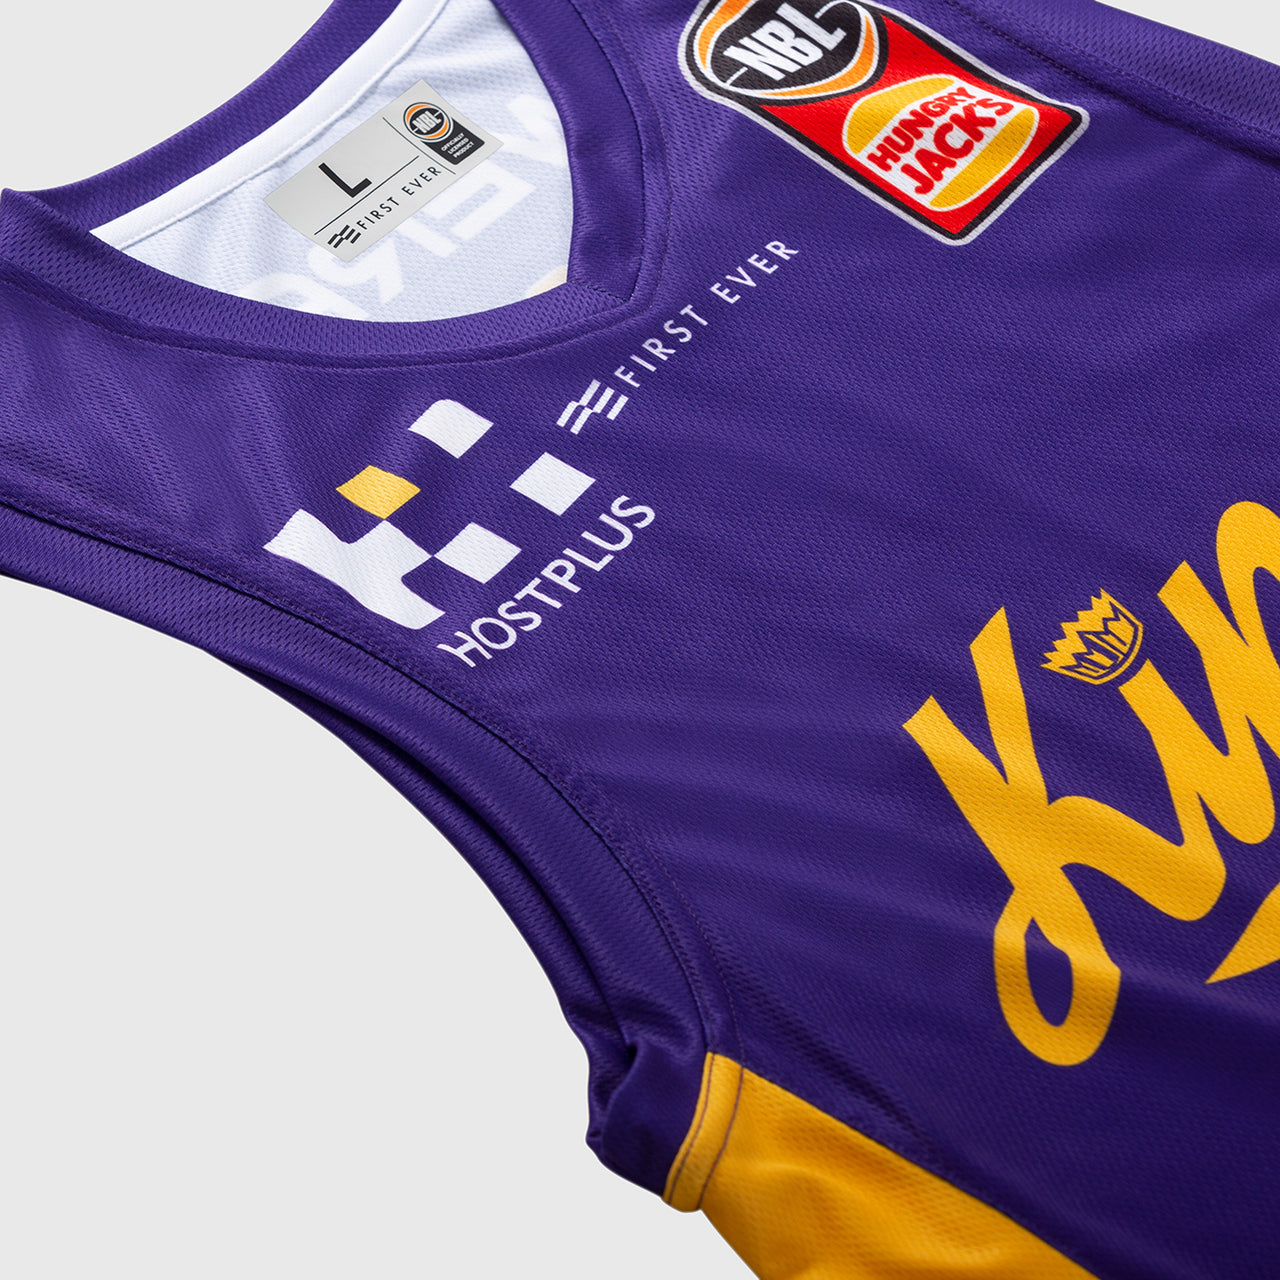 Sydney Kings 18/19 Authentic Jersey - Kevin Lisch